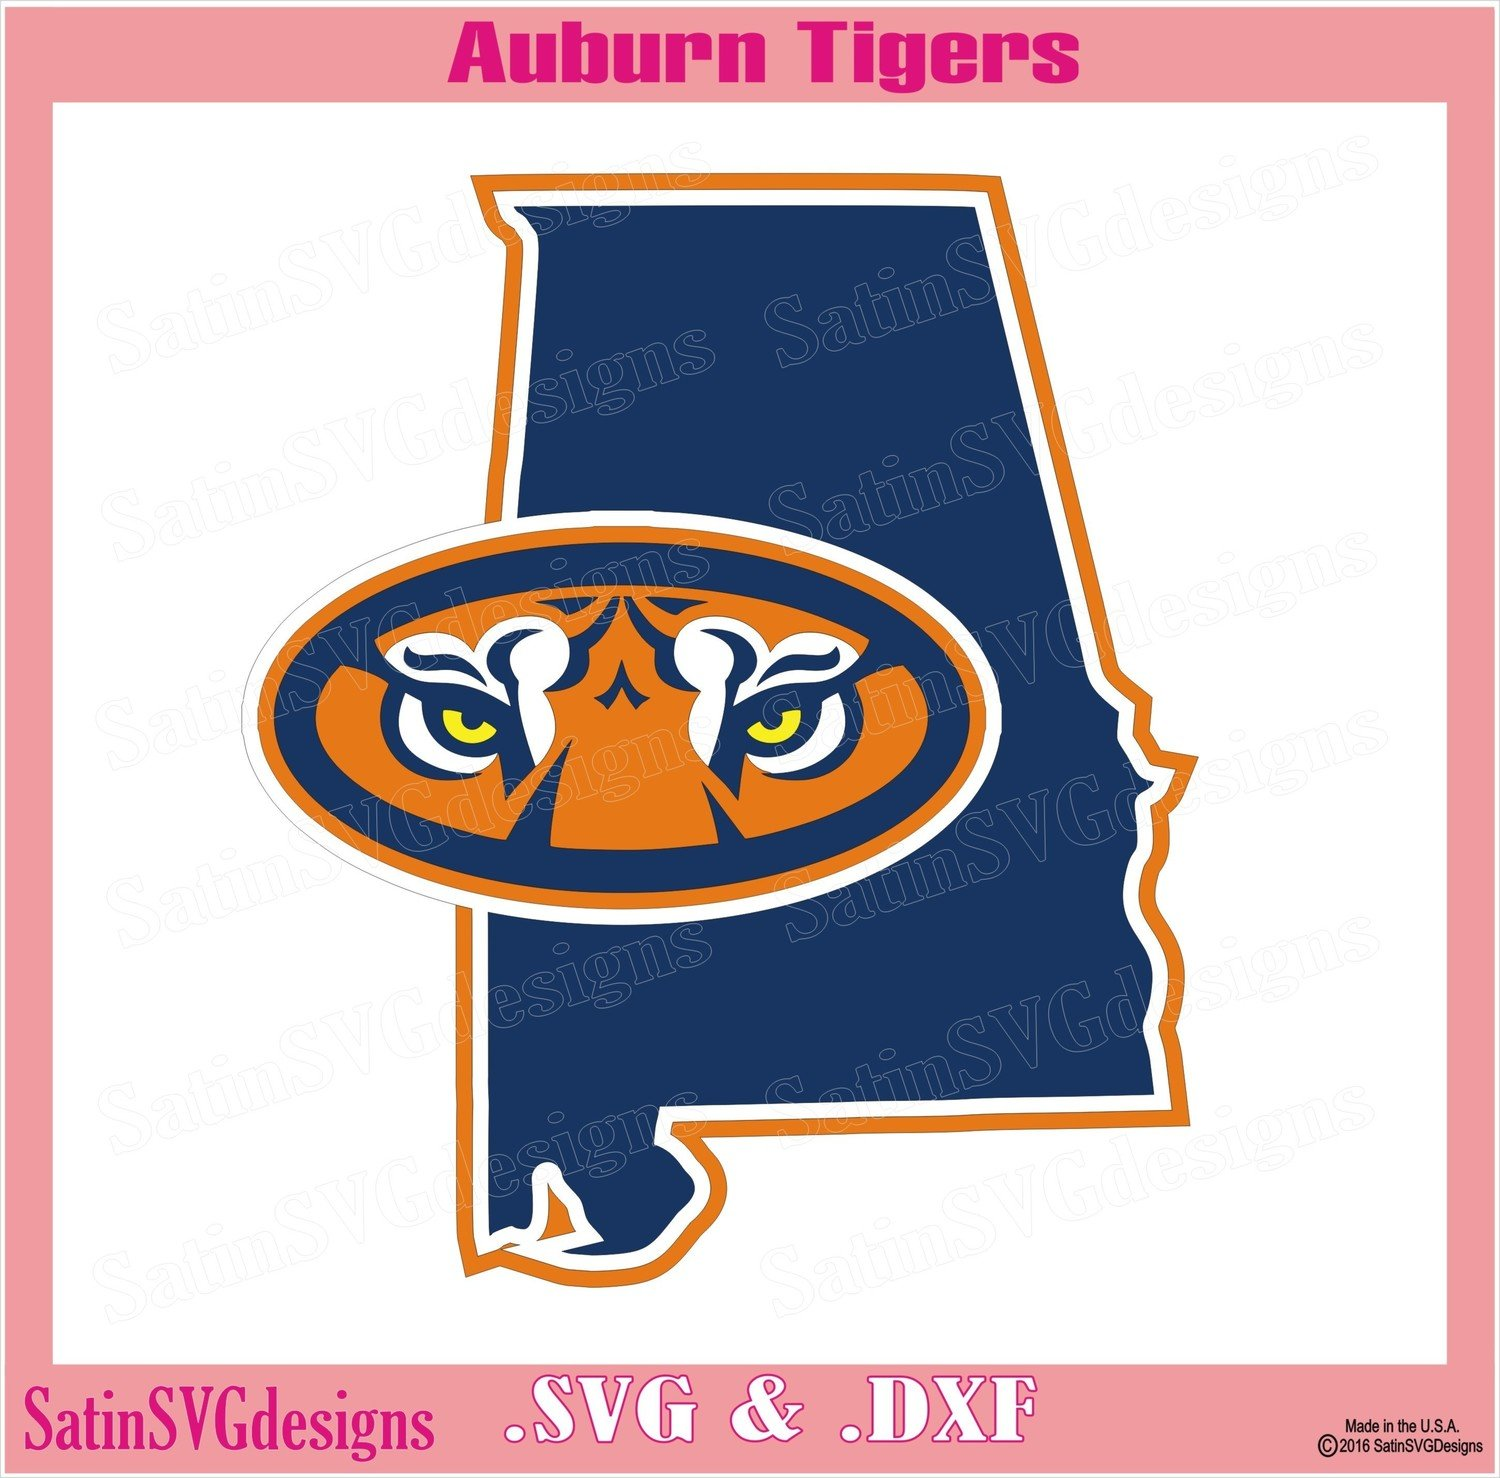 Auburn Tigers State Map Design SVG Files, Cricut, Silhouette Studio, on southern cal state map, northern michigan state map, concord state map, rochester state map, eastern ct state map, tucson state map, augusta state map, tulsa state map, northern colorado state map, ole miss state map, williamsburg state map, lake hartwell state map, montgomery state map, lake oroville state map, powder river state map, walla walla state map, anaheim state map, dupont state map, harvard state map, hillsdale state map,